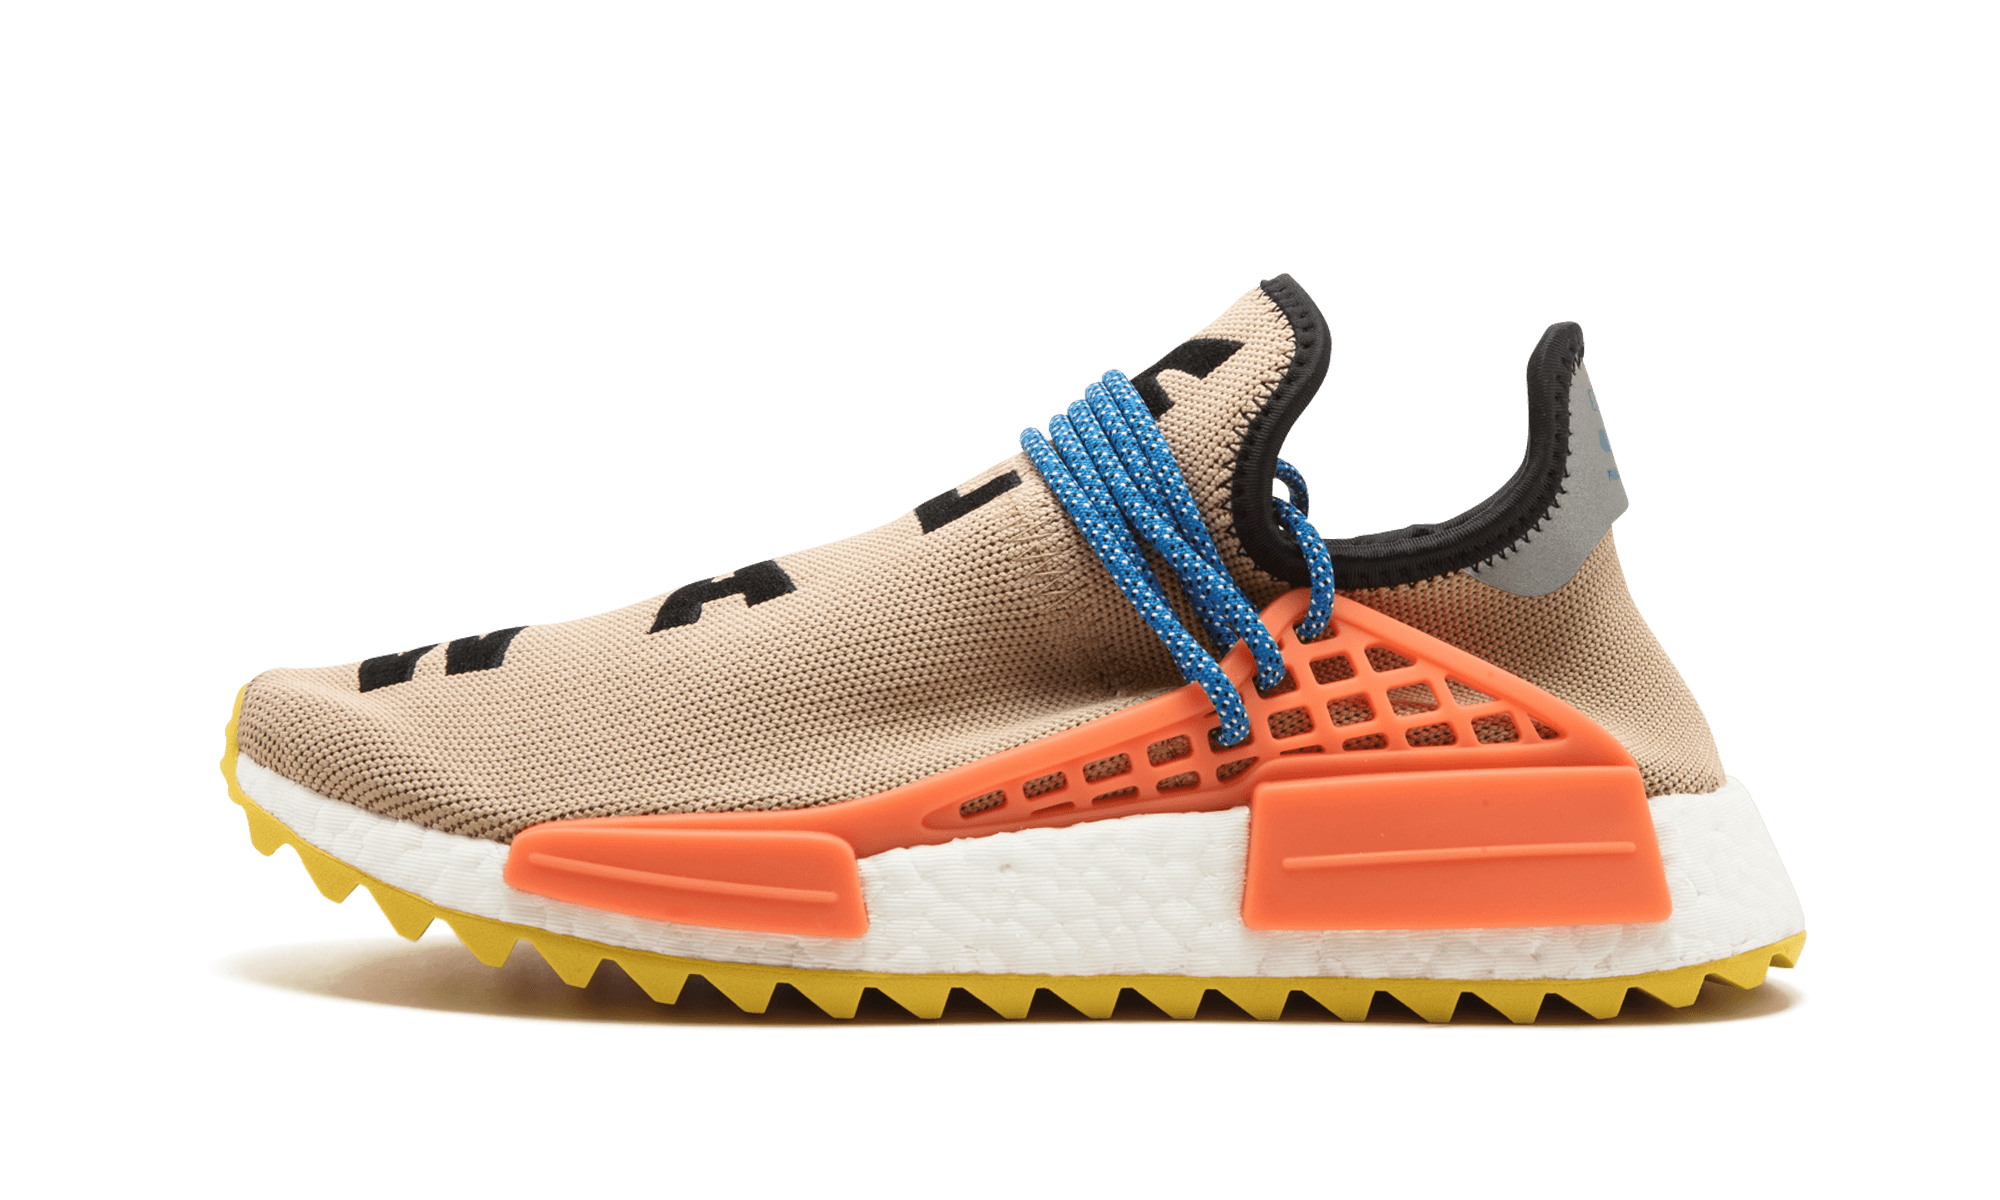 8bf54e48a Pharrell s famous adidas NMD Hu goes off road with this new Trail edition  that debuted in the fall of 2017. The NMD Human Race Trail differs from  Pharrell s ...